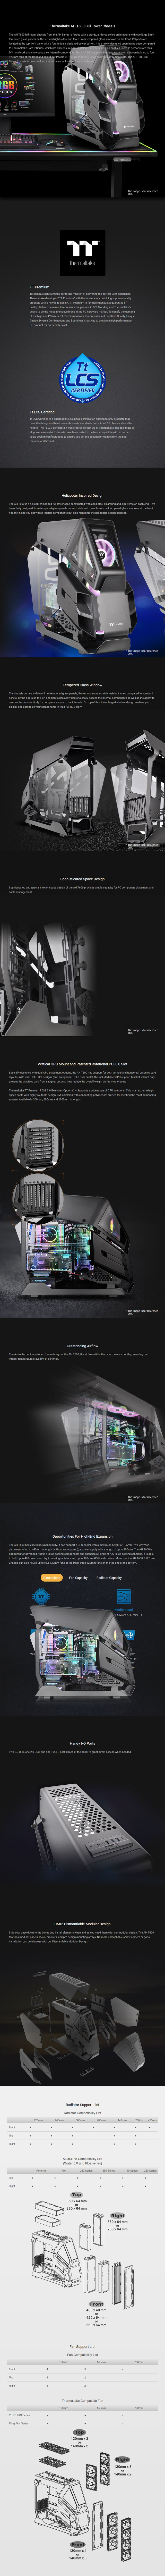 Thermaltake AH T600 Tempered Glass Full Tower E-ATX Chassis - Overview 1